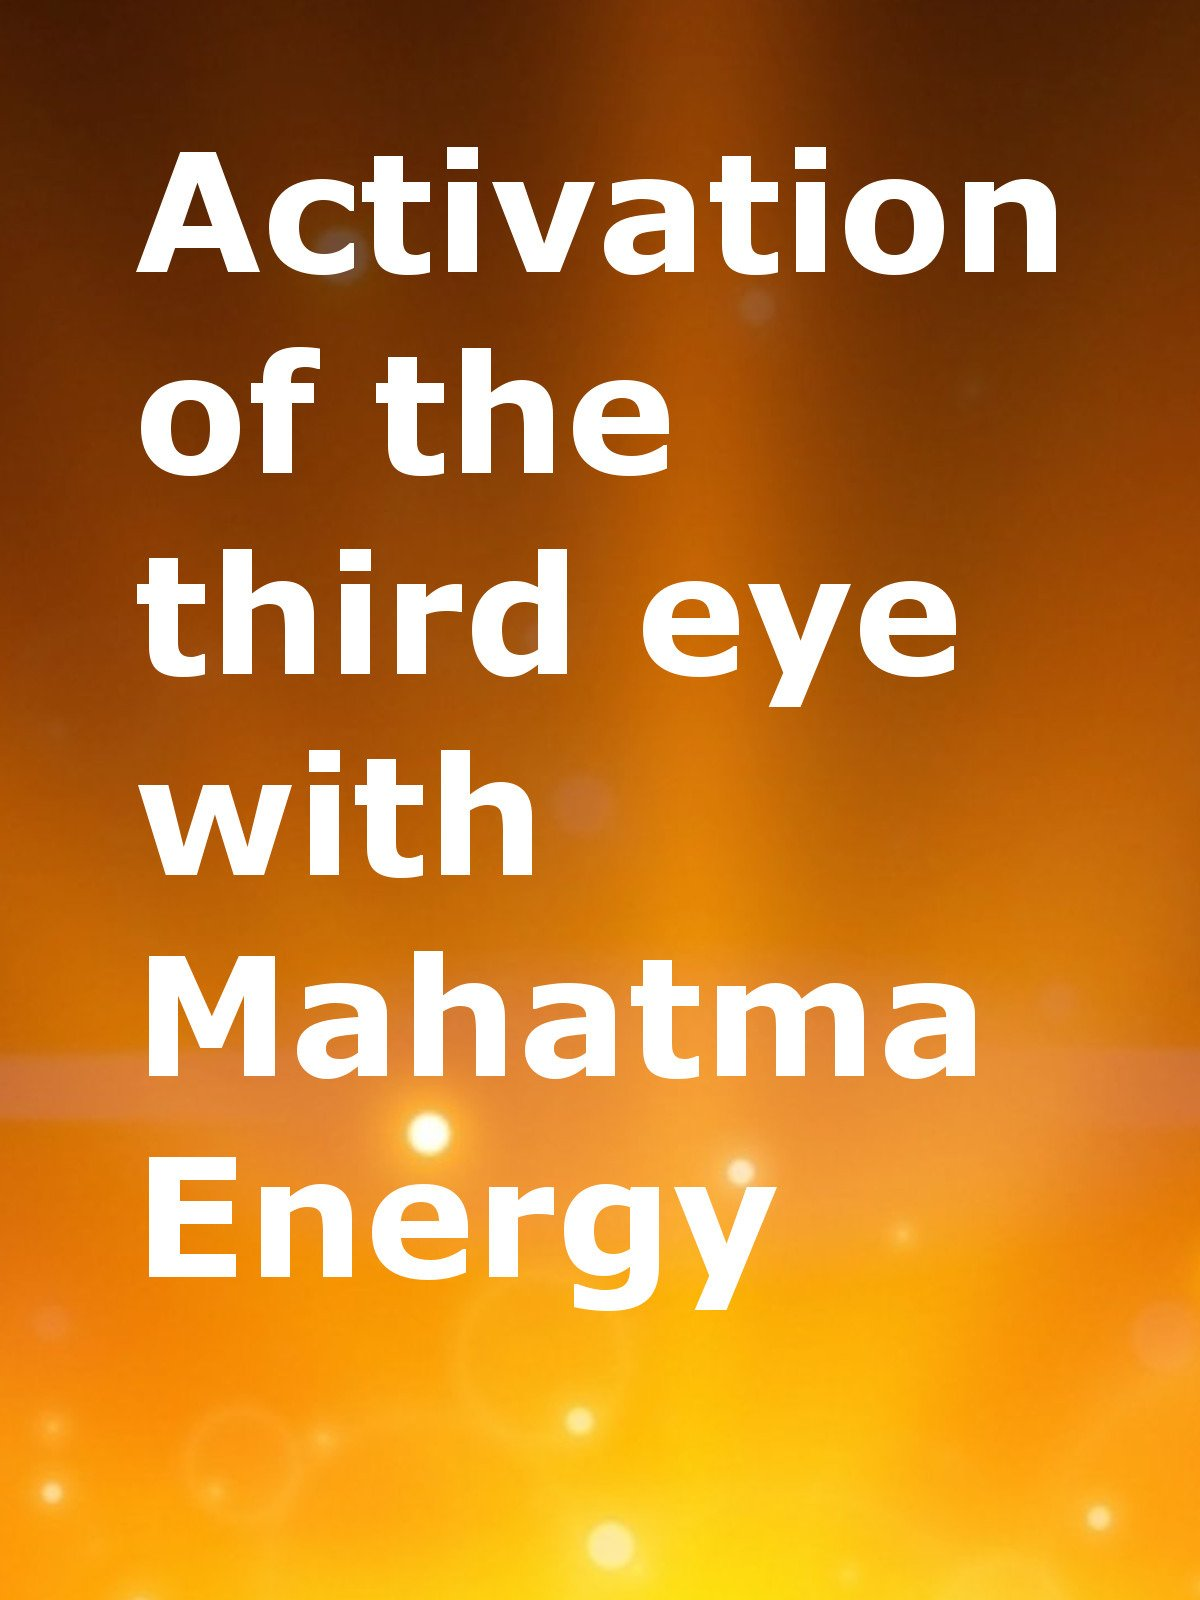 Activation of the third eye with Mahatma energy